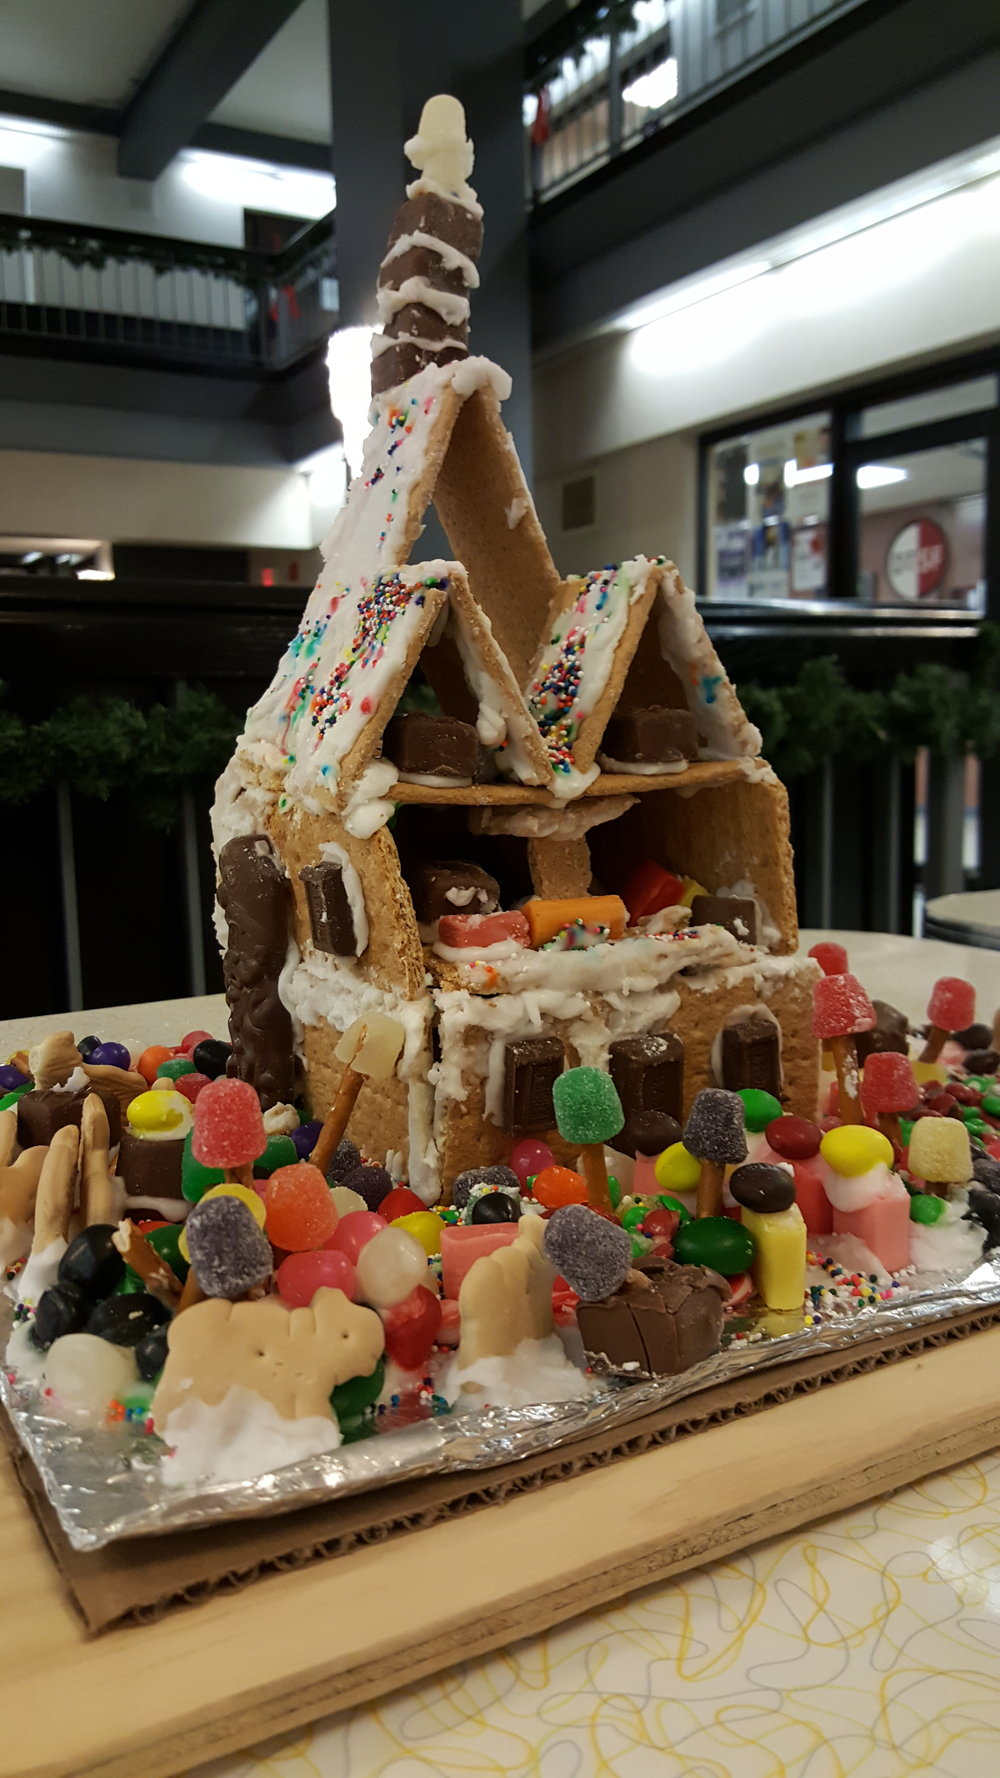 #6 Kade & Annika's Amazing Gingerbread HQ